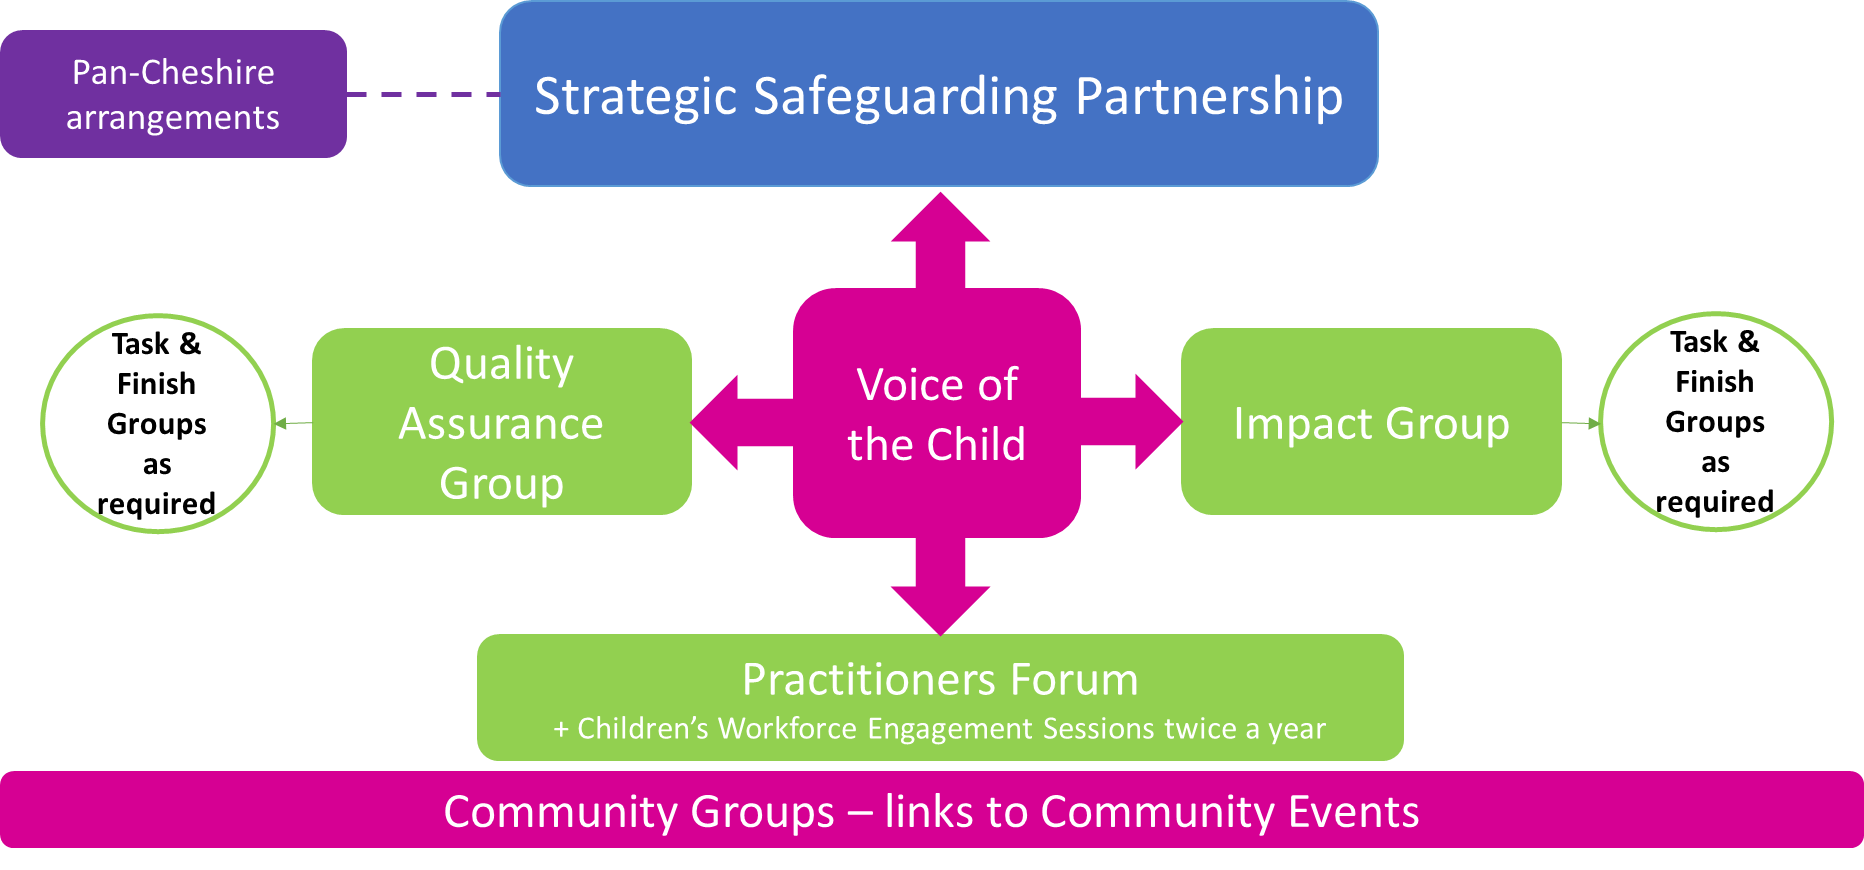 Warrington safeguarding partnership structure